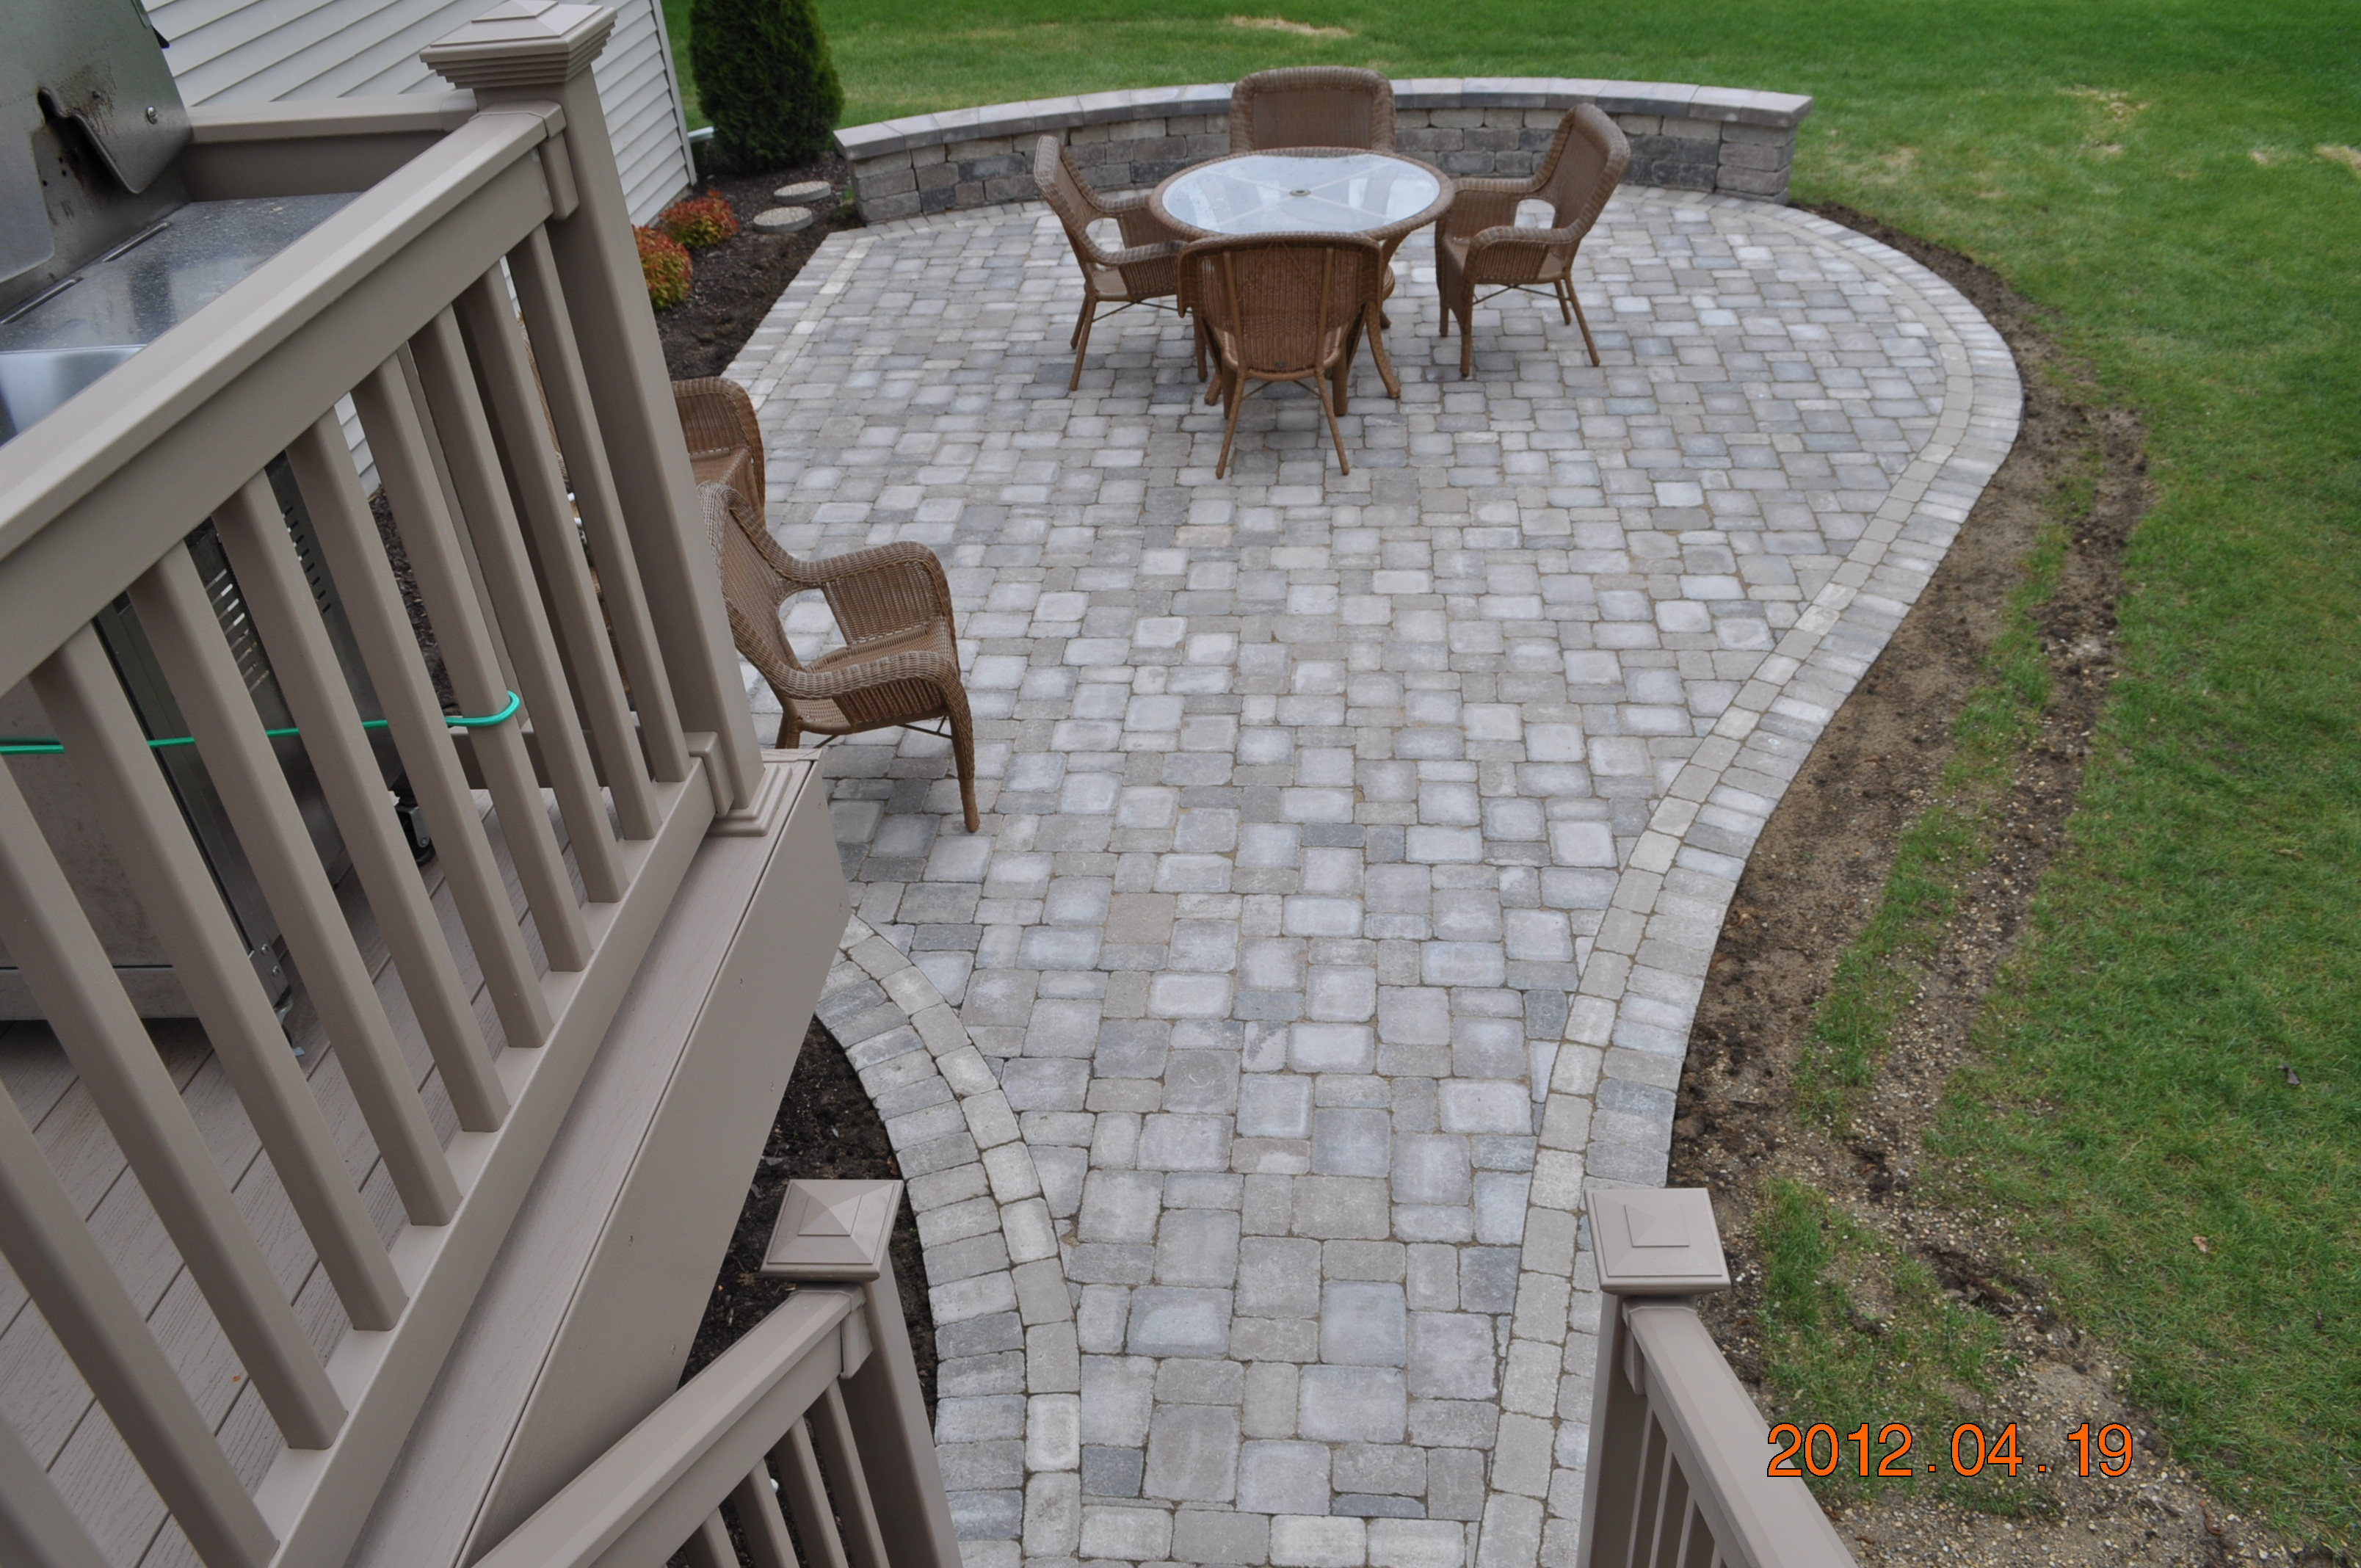 This Small, Circular Brick Paver Patio Is Made To Fit This Rockford Backyard .